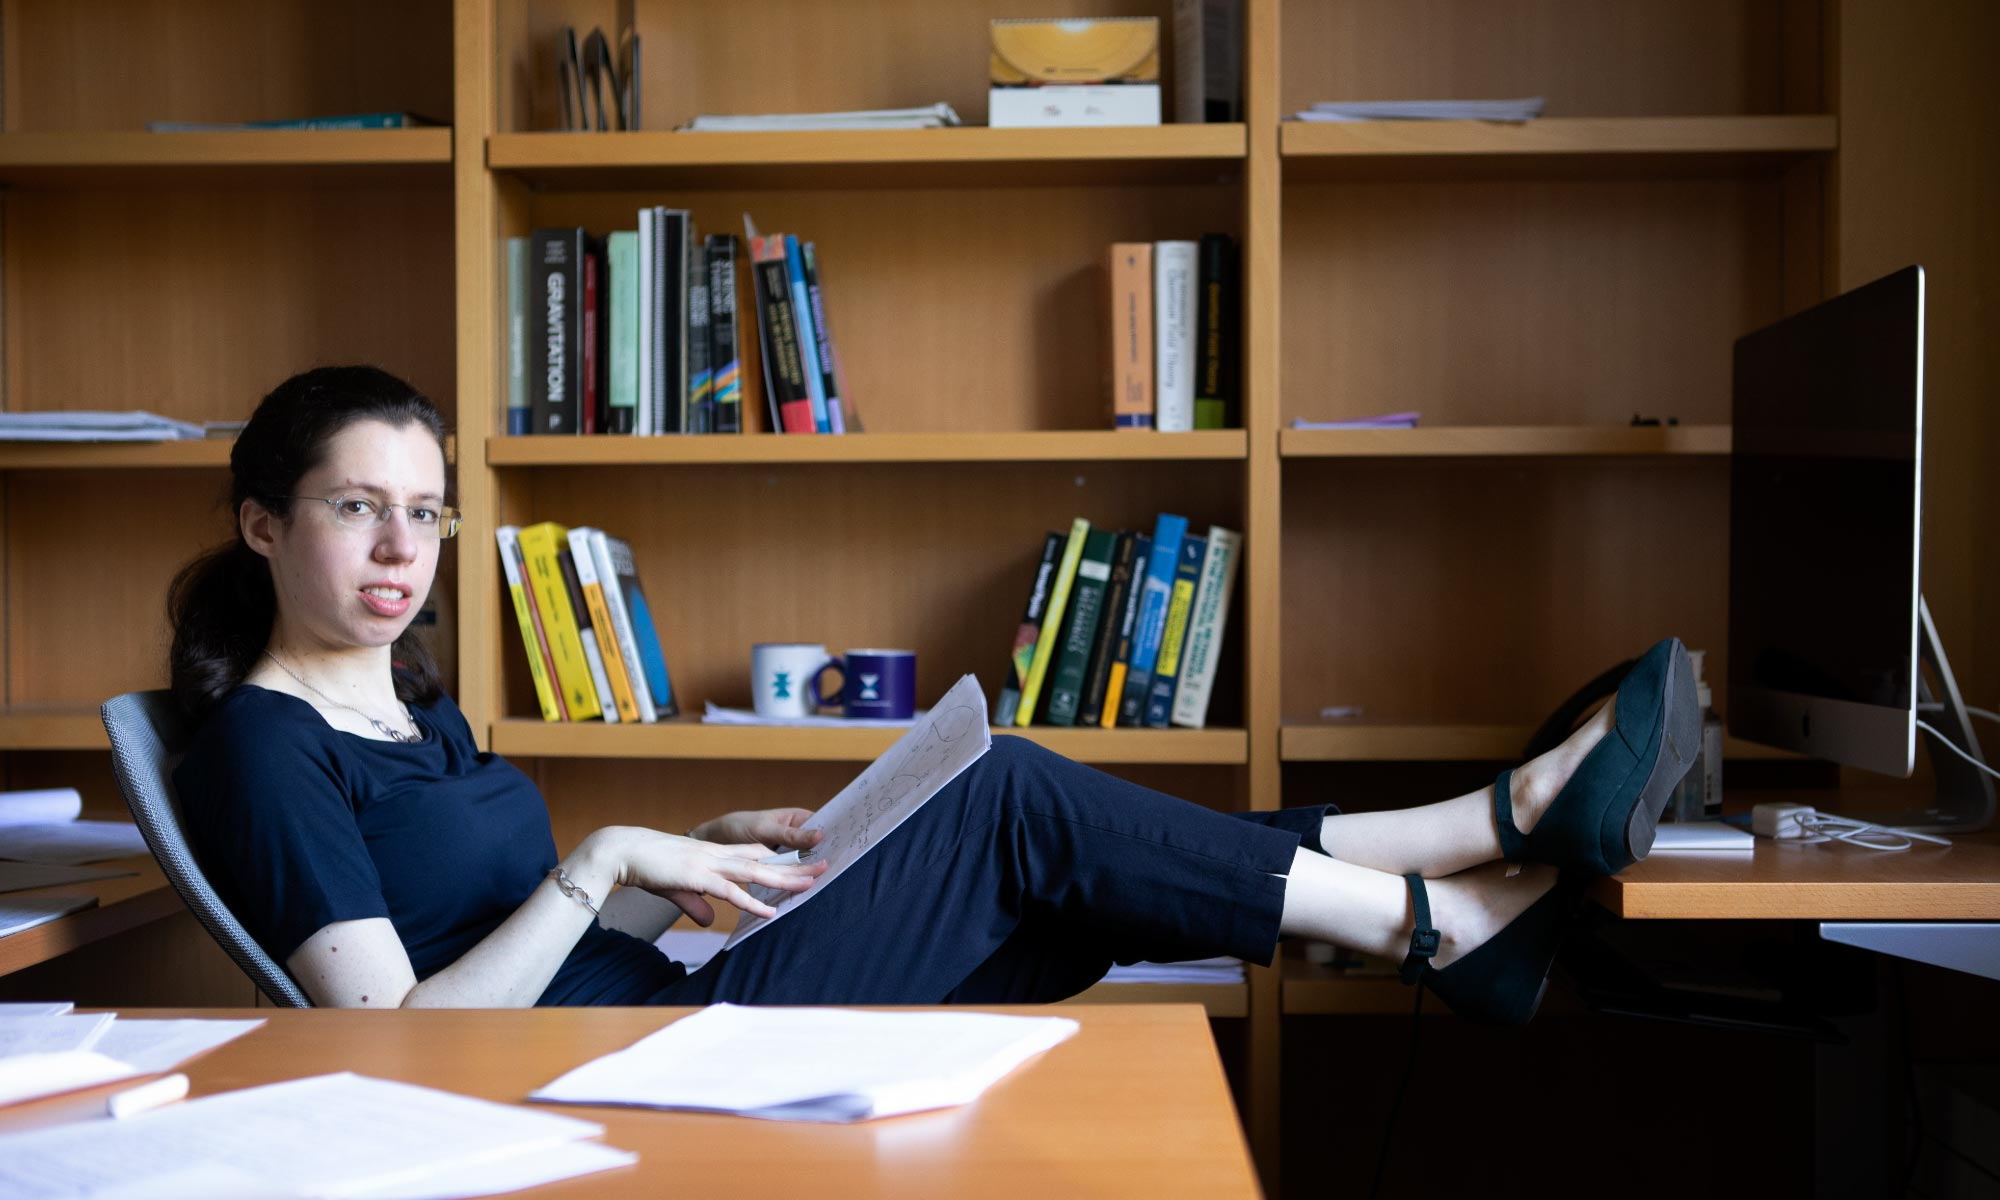 Photo of Engelhardt with her feet up on her desk glancing sideways at the camera with bookcases lining the wall behind.